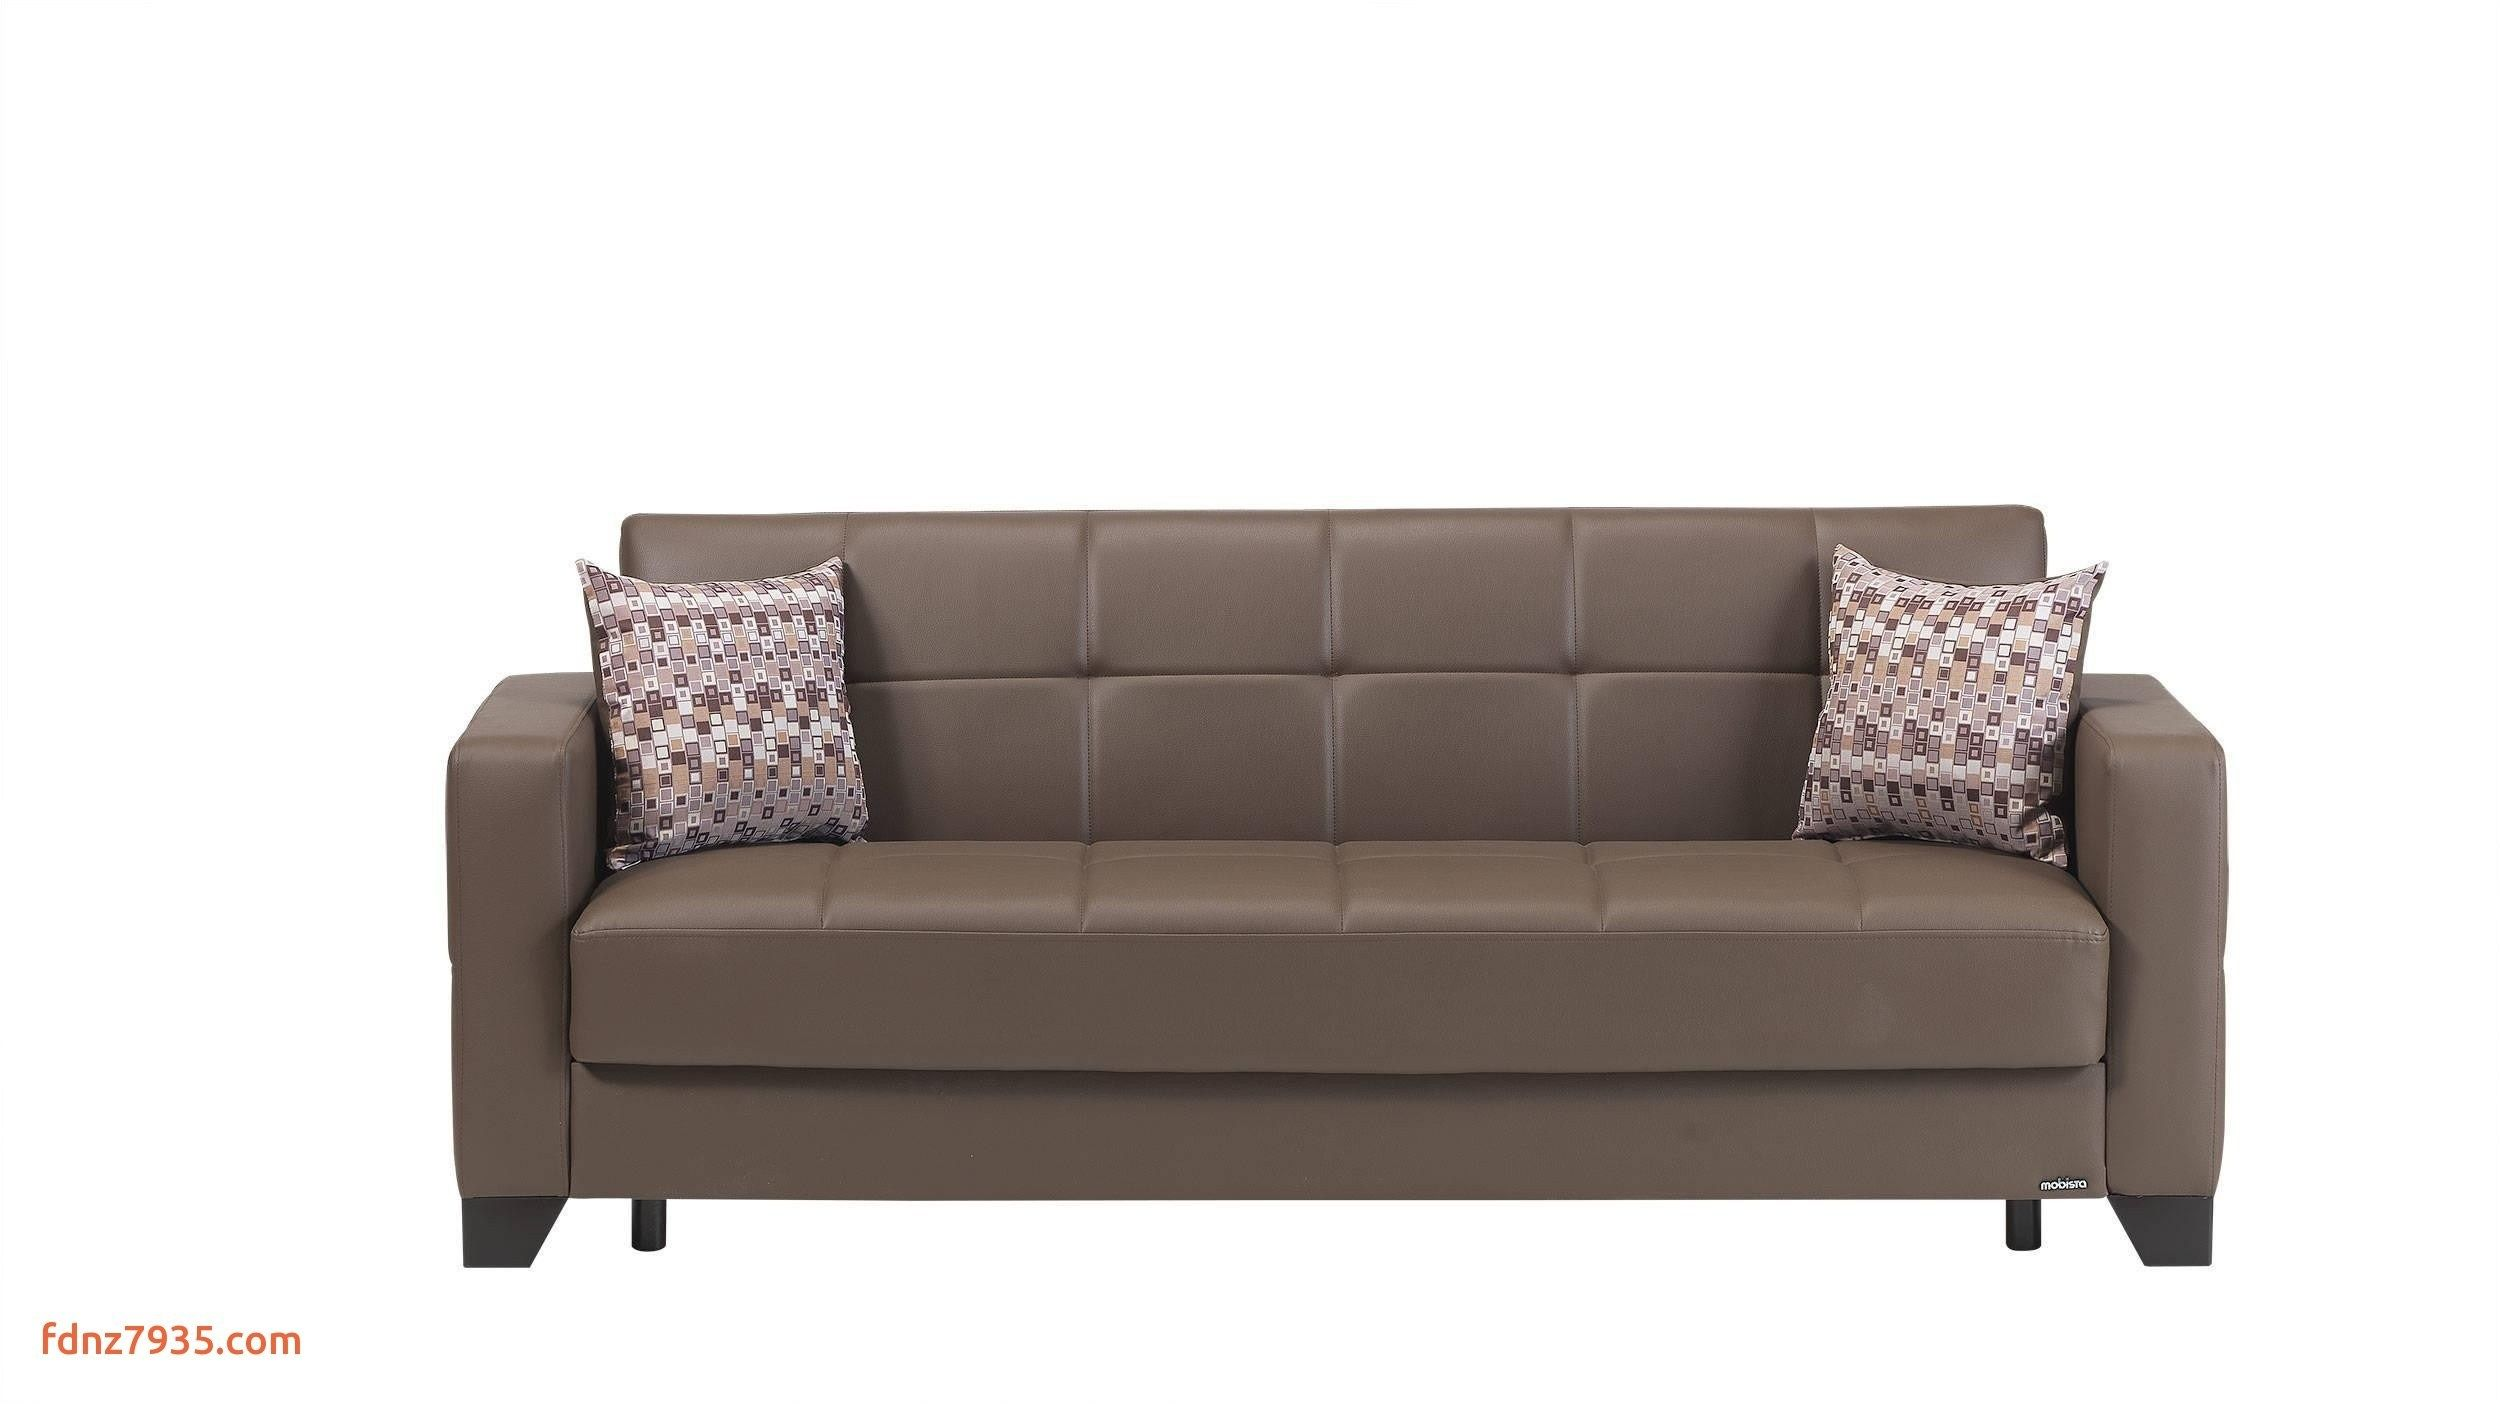 What Is The Difference Between A Couch And A Sofa Luxury Living